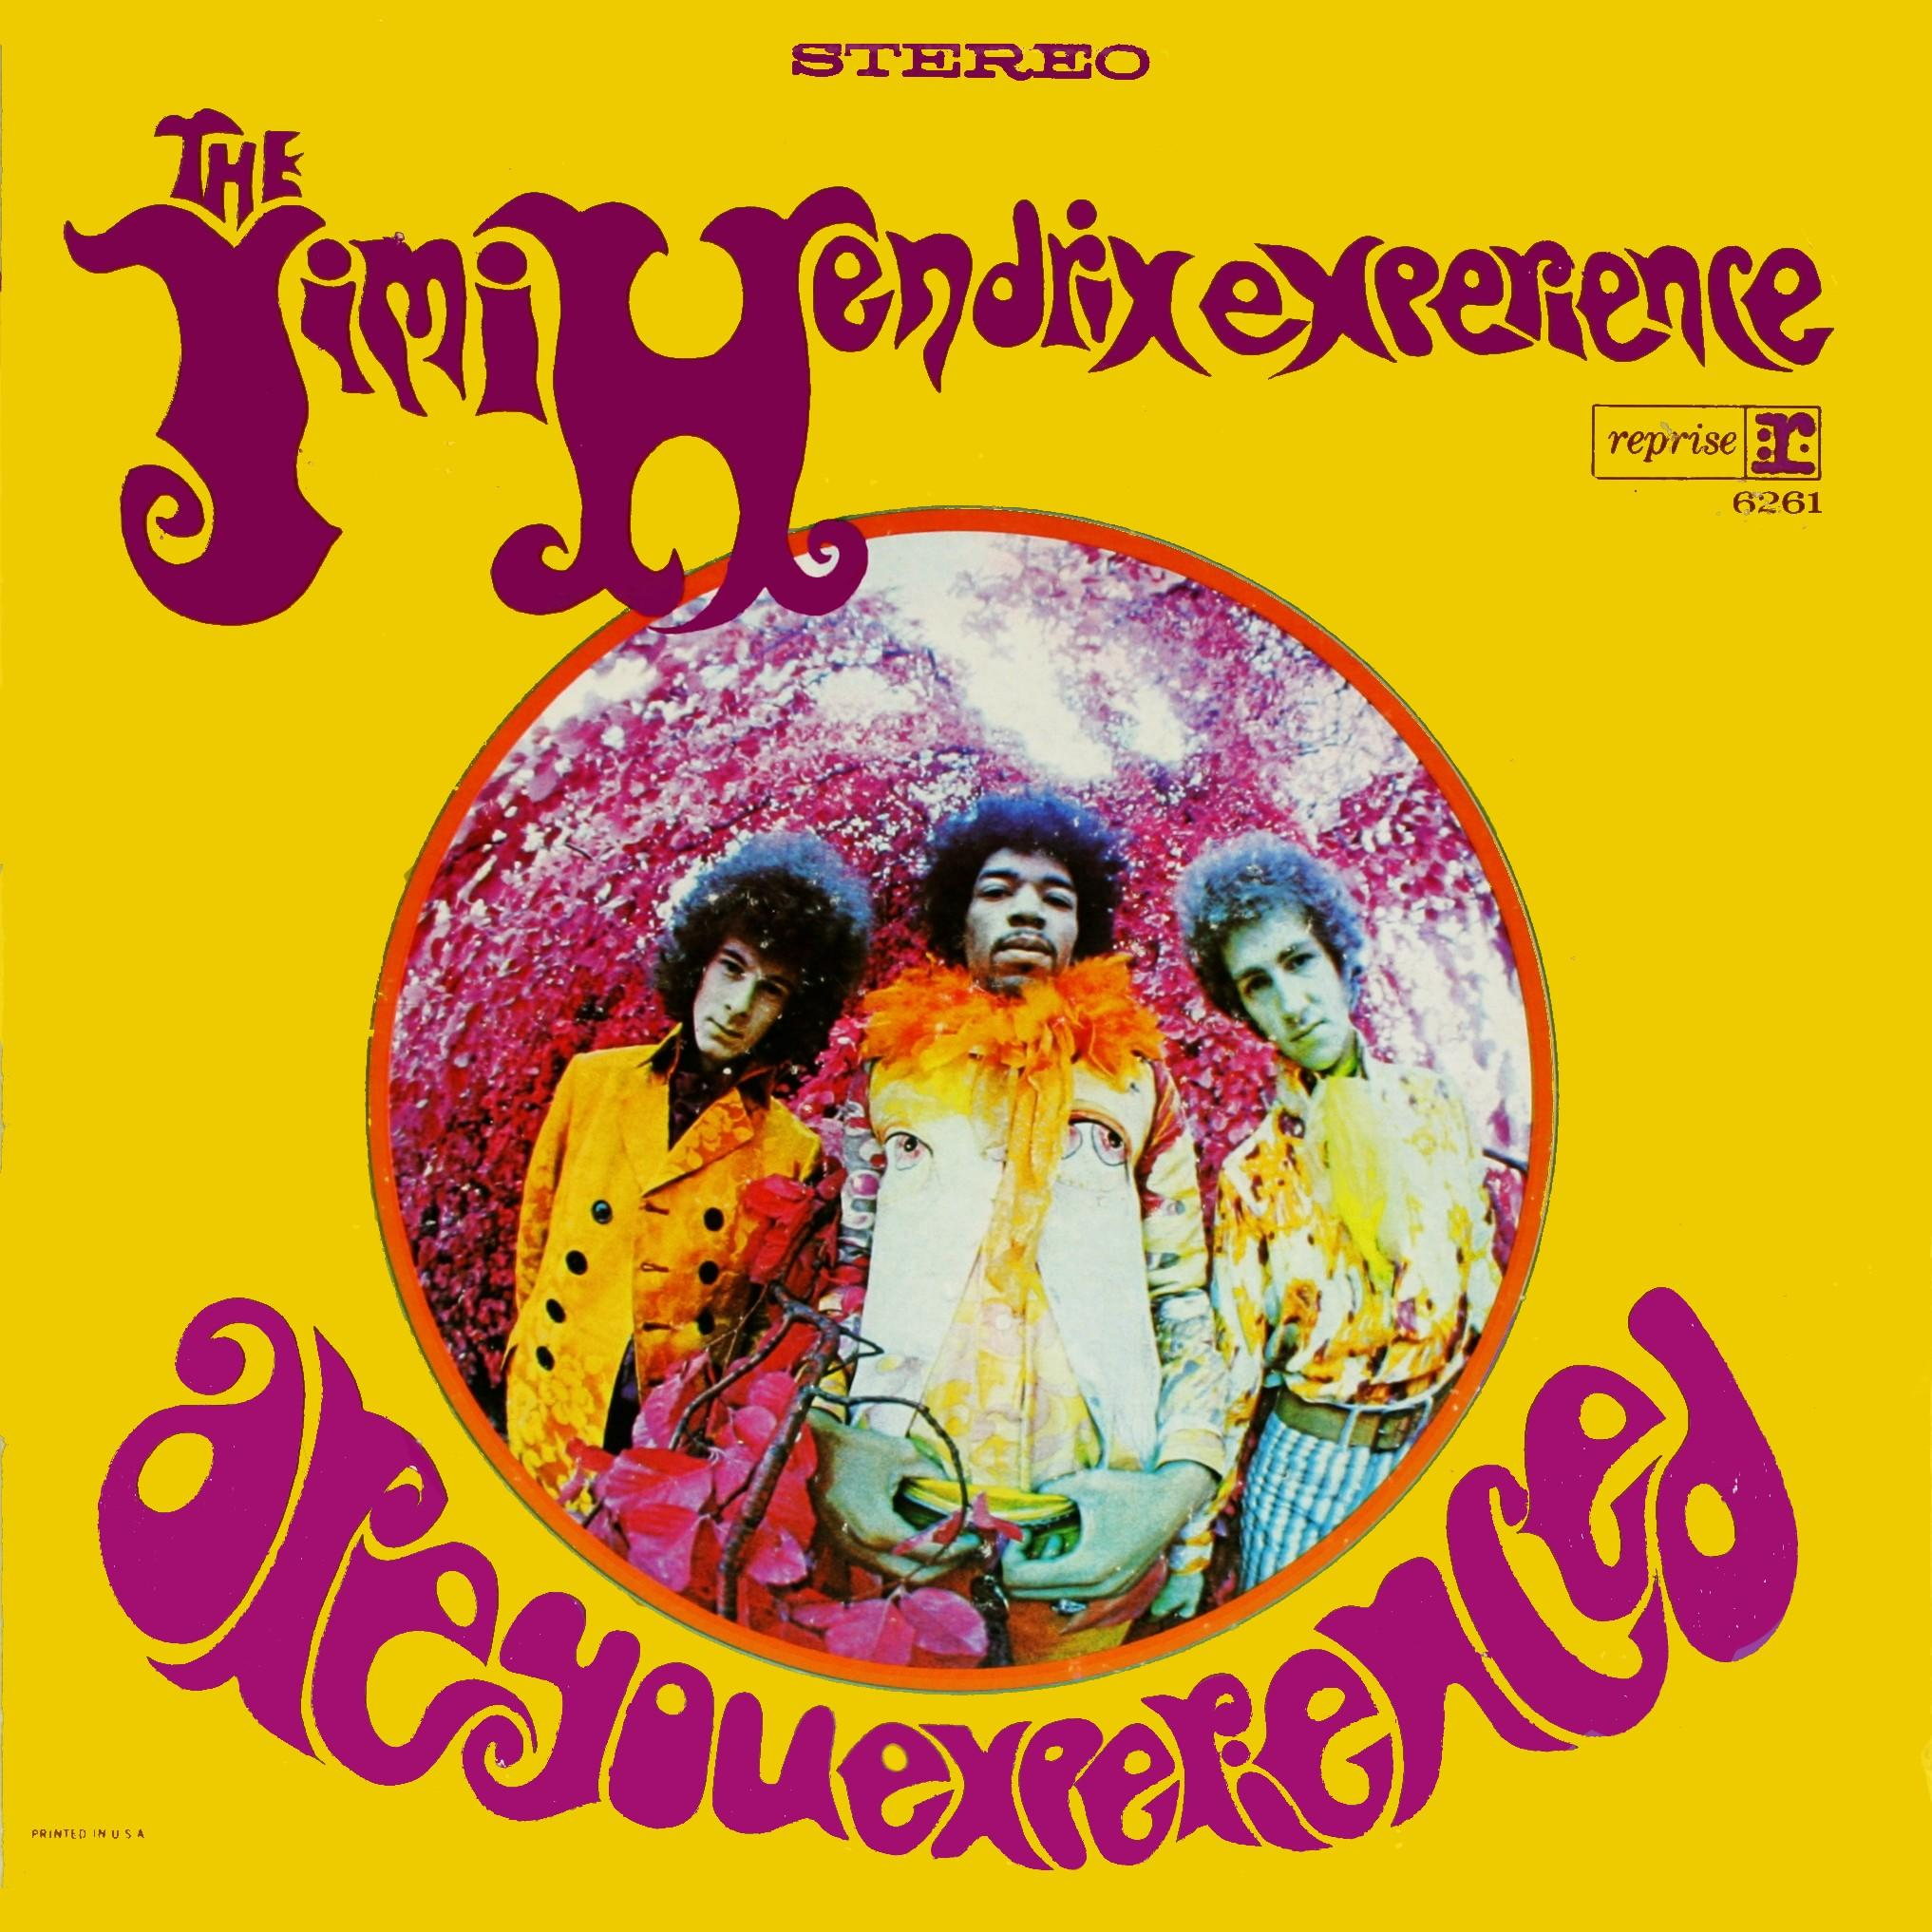 The twenty greatest albums of 1967 | The Independent